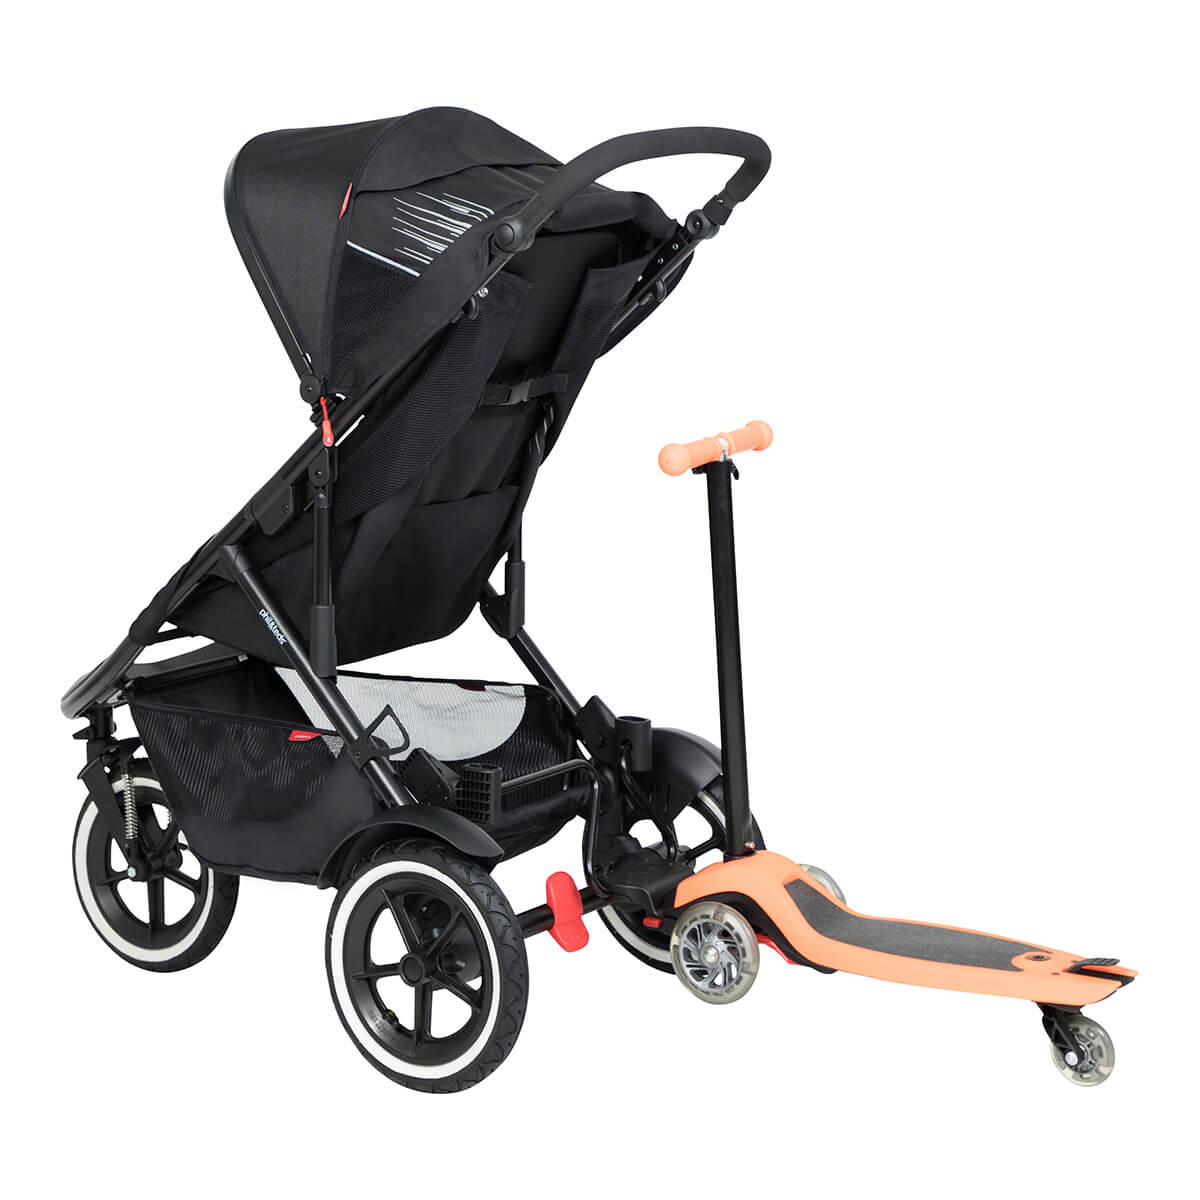 https://cdn.accentuate.io/4509528162392/19272668348504/philteds-sport-poussette-with-freerider-stroller-board-in-rear-v1626484434537.jpg?1200x1200